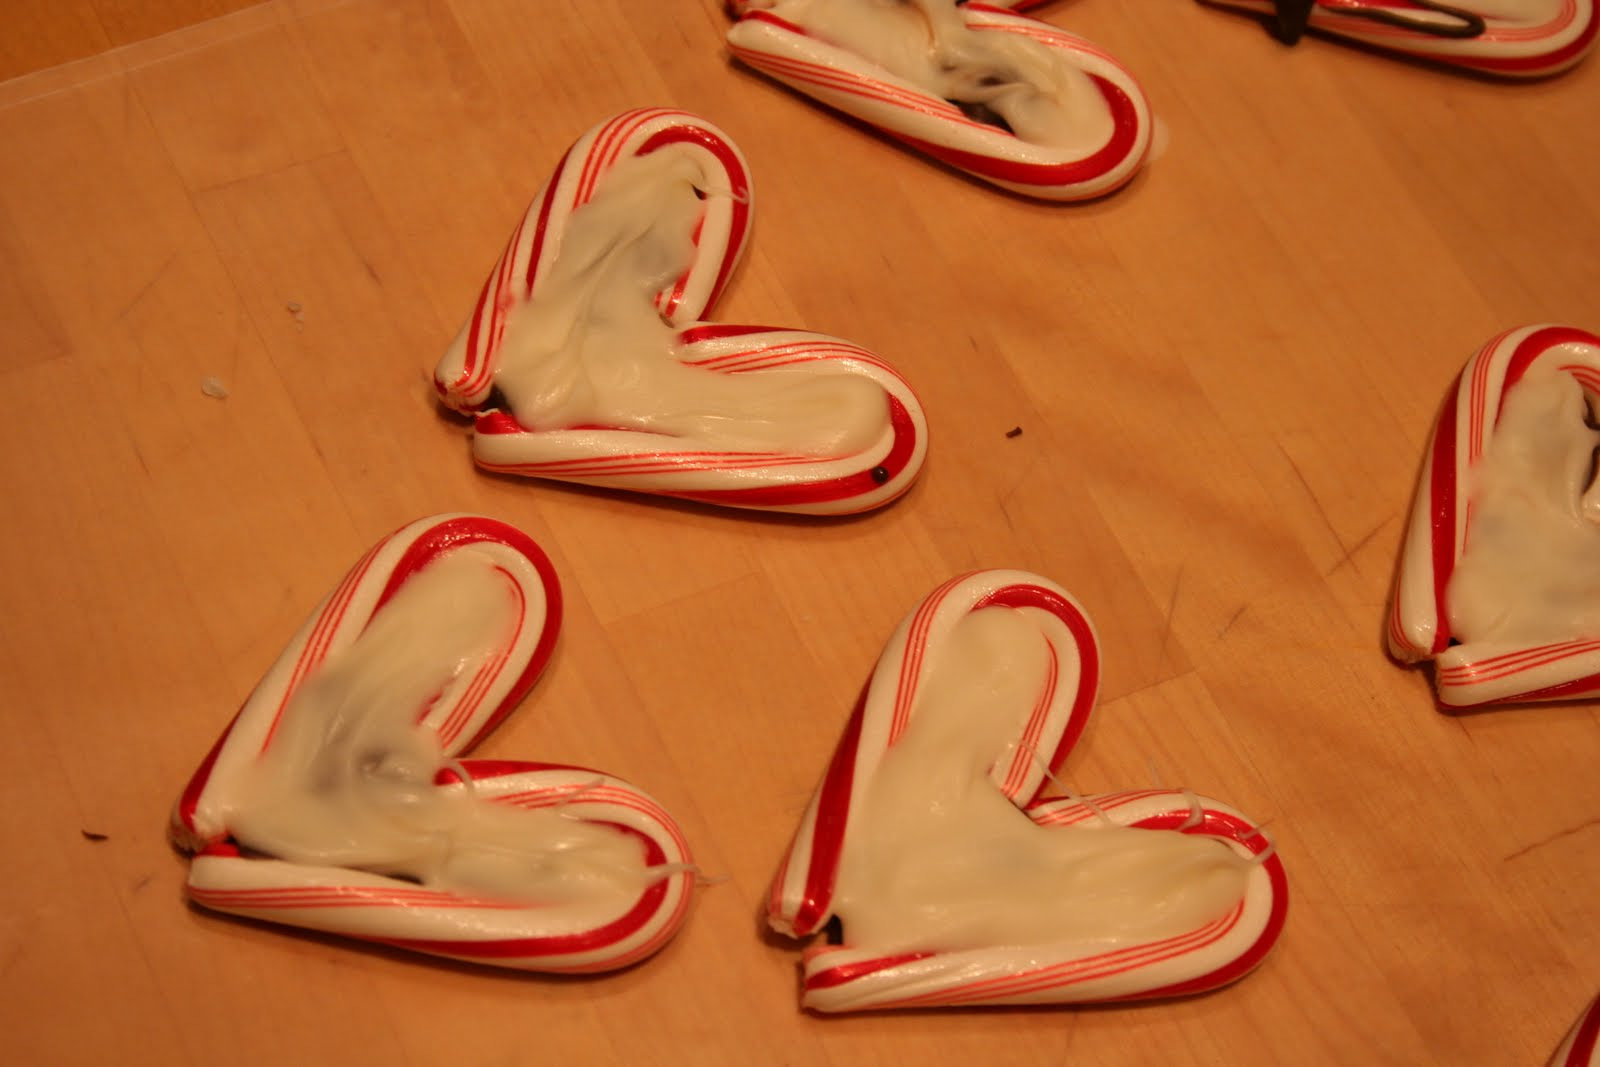 Smothery Candy Cane Hearts Edible Craft Party Food Ideas Candy Cane Crafts Kindergarten Candy Cane Crafts To Sell baby Candy Cane Crafts